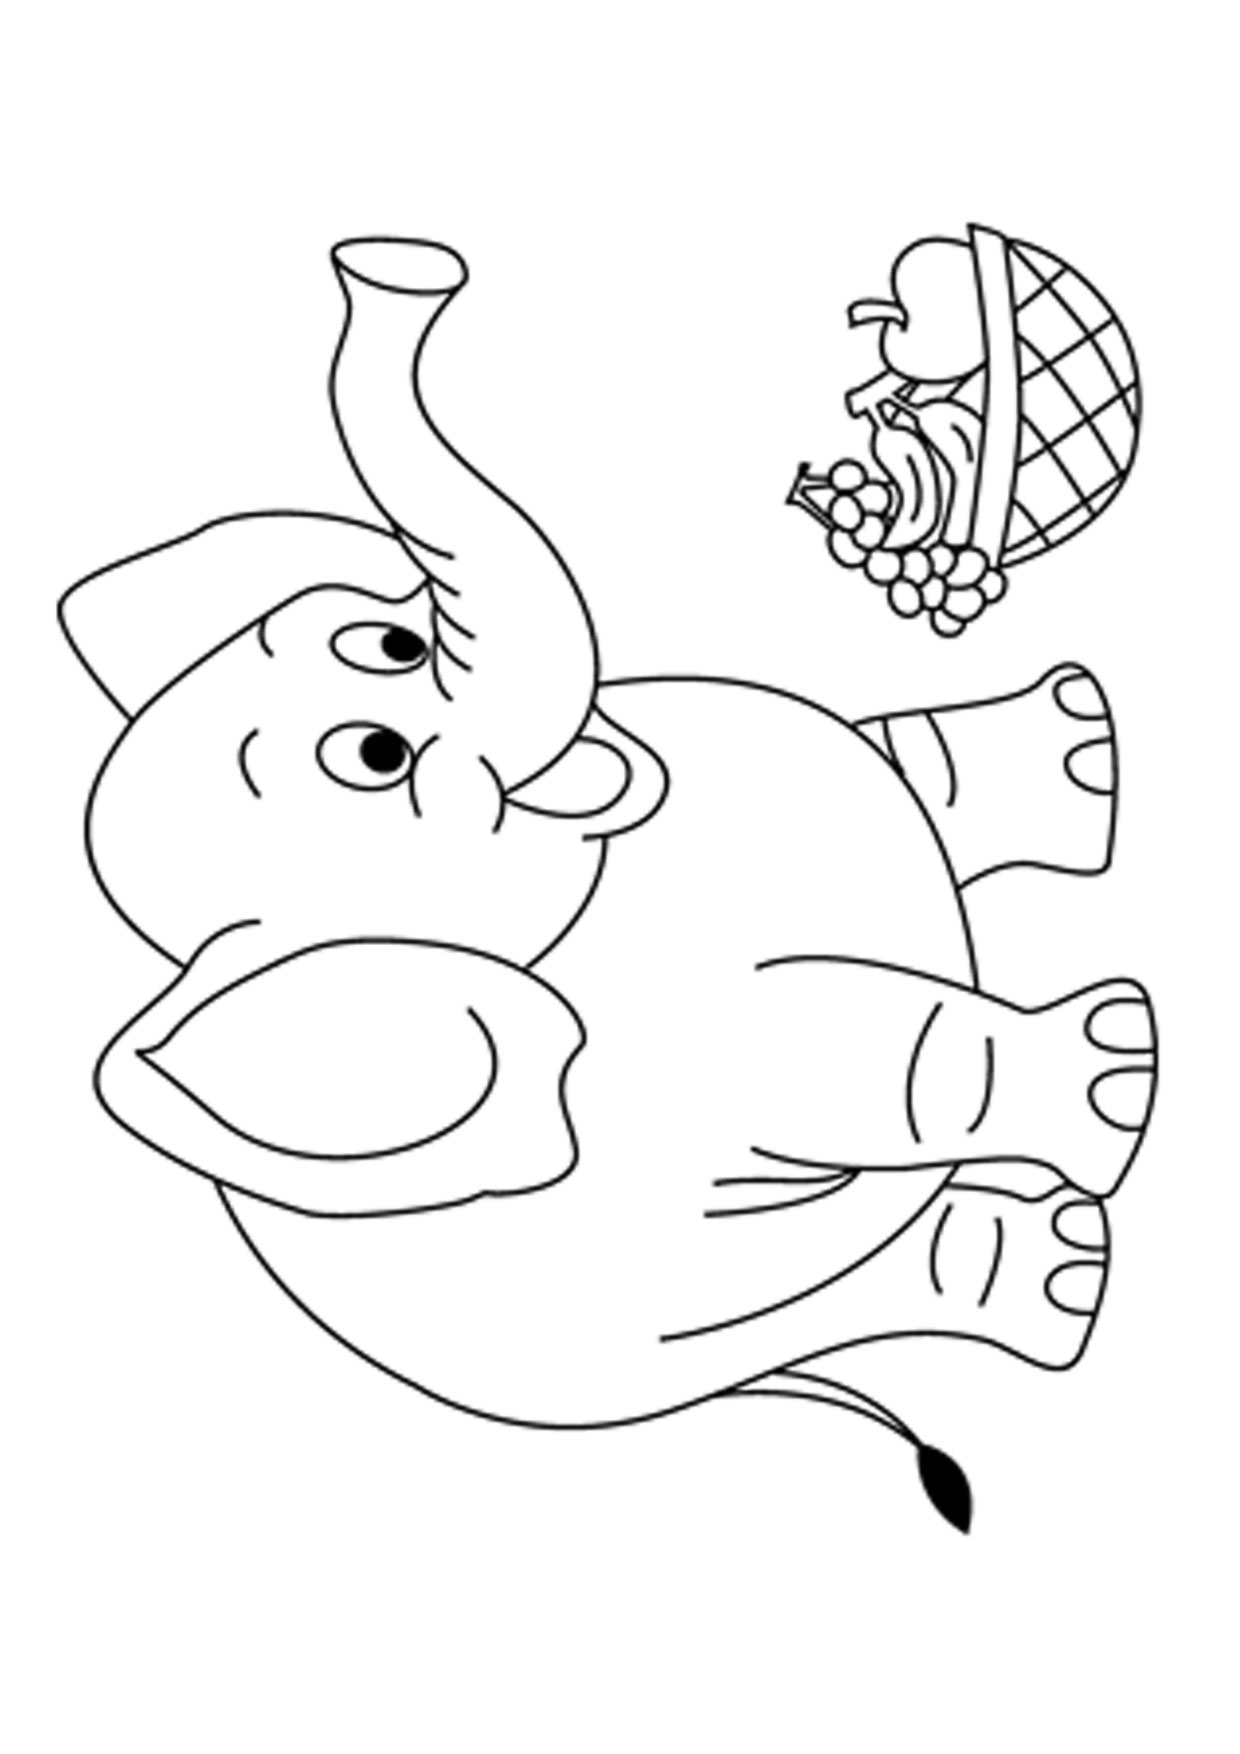 Disegno di Elefante Cartoon da colorare 08